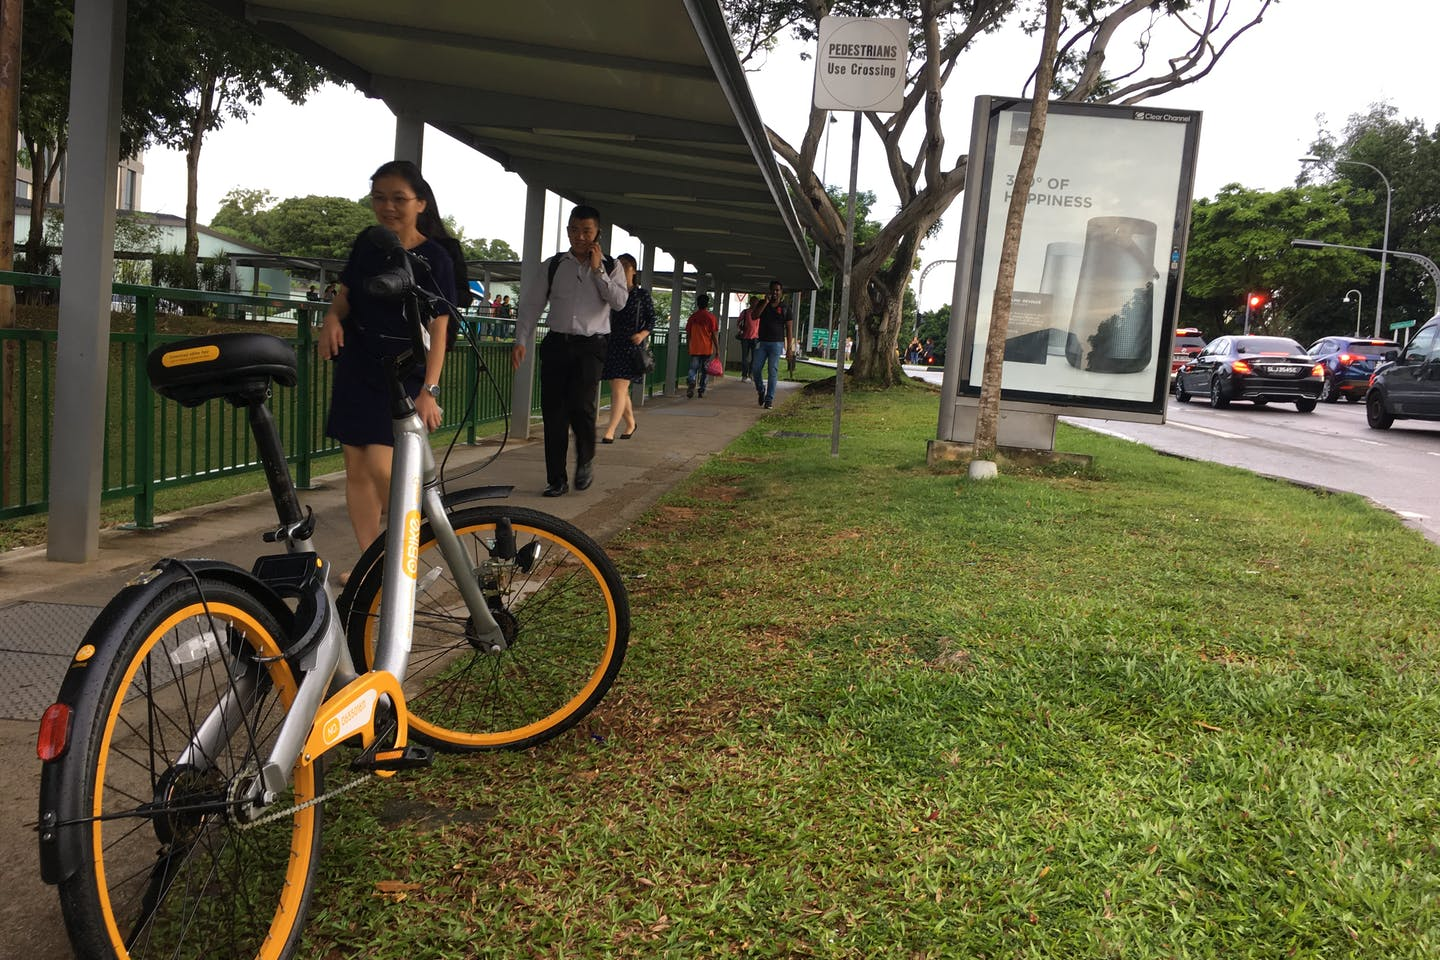 An Obike bicycle is left by a busy walkway near Kent Ridge train station in Singapore. The explosion in use of smart bike-sharing schemes has concerned Singapore's tidiness-conscious government. Image: Eco-Business